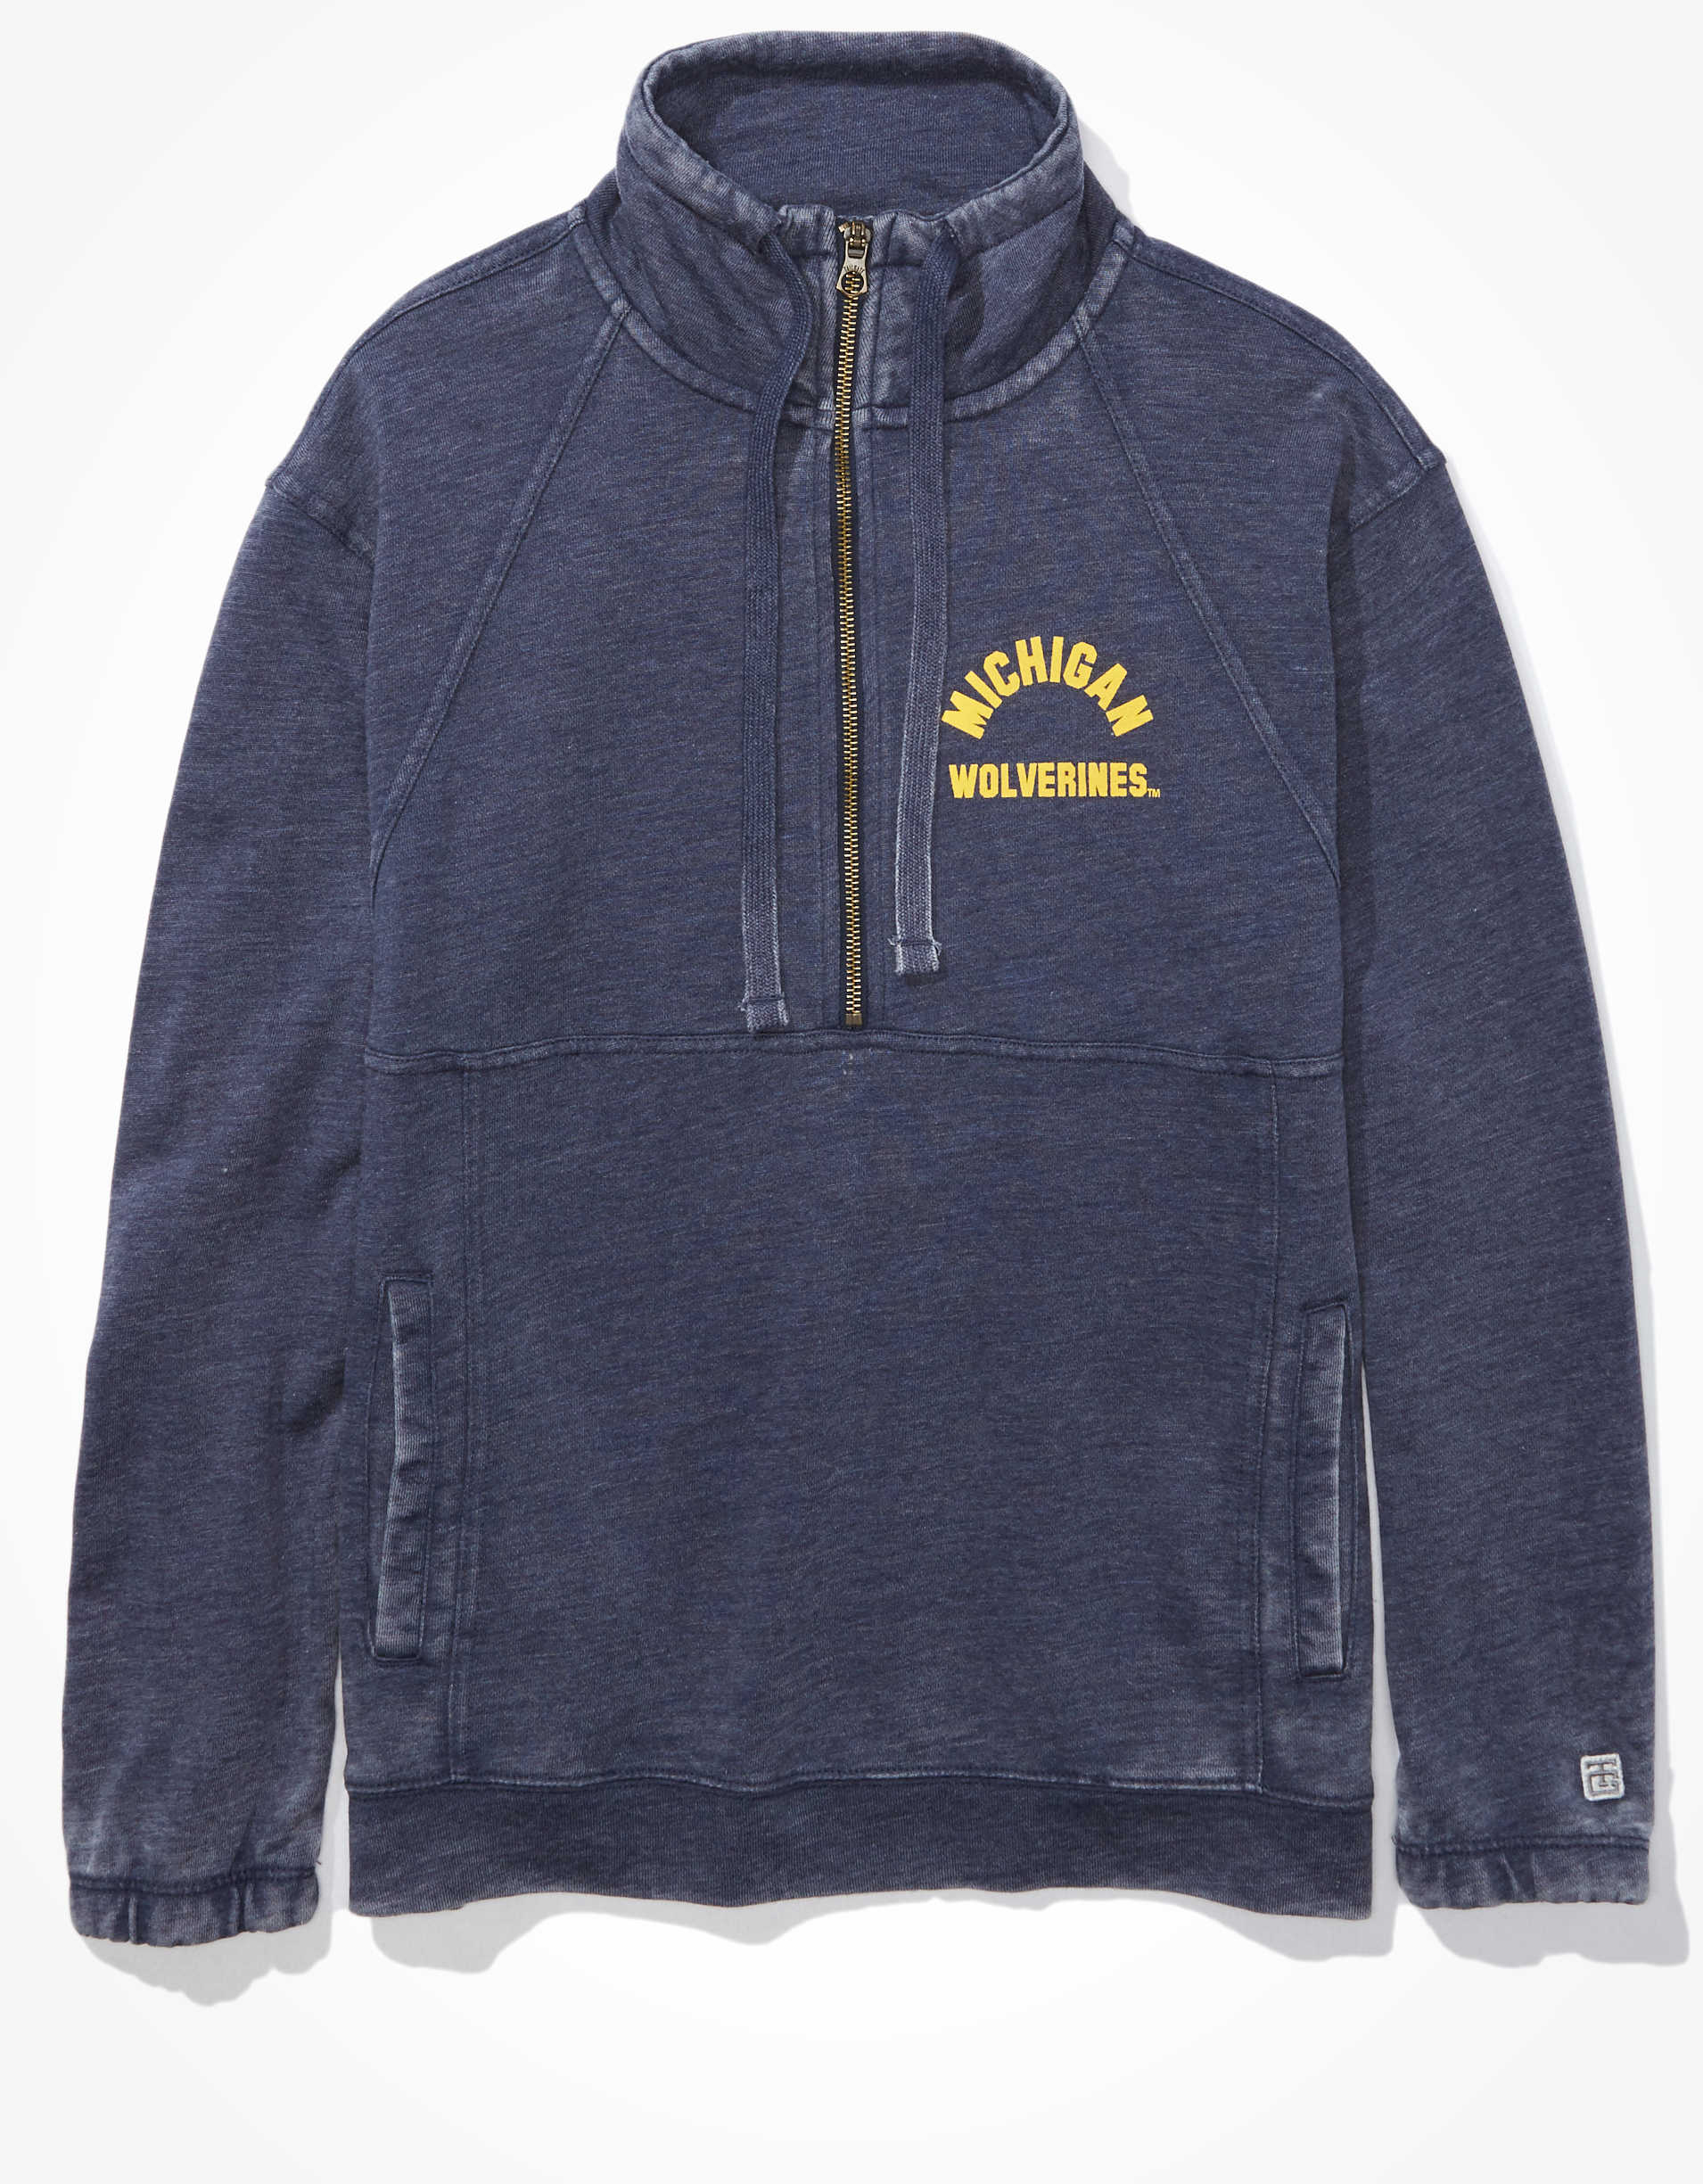 Tailgate Women's Michigan Wolverines Quarter-Zip Sweatshirt